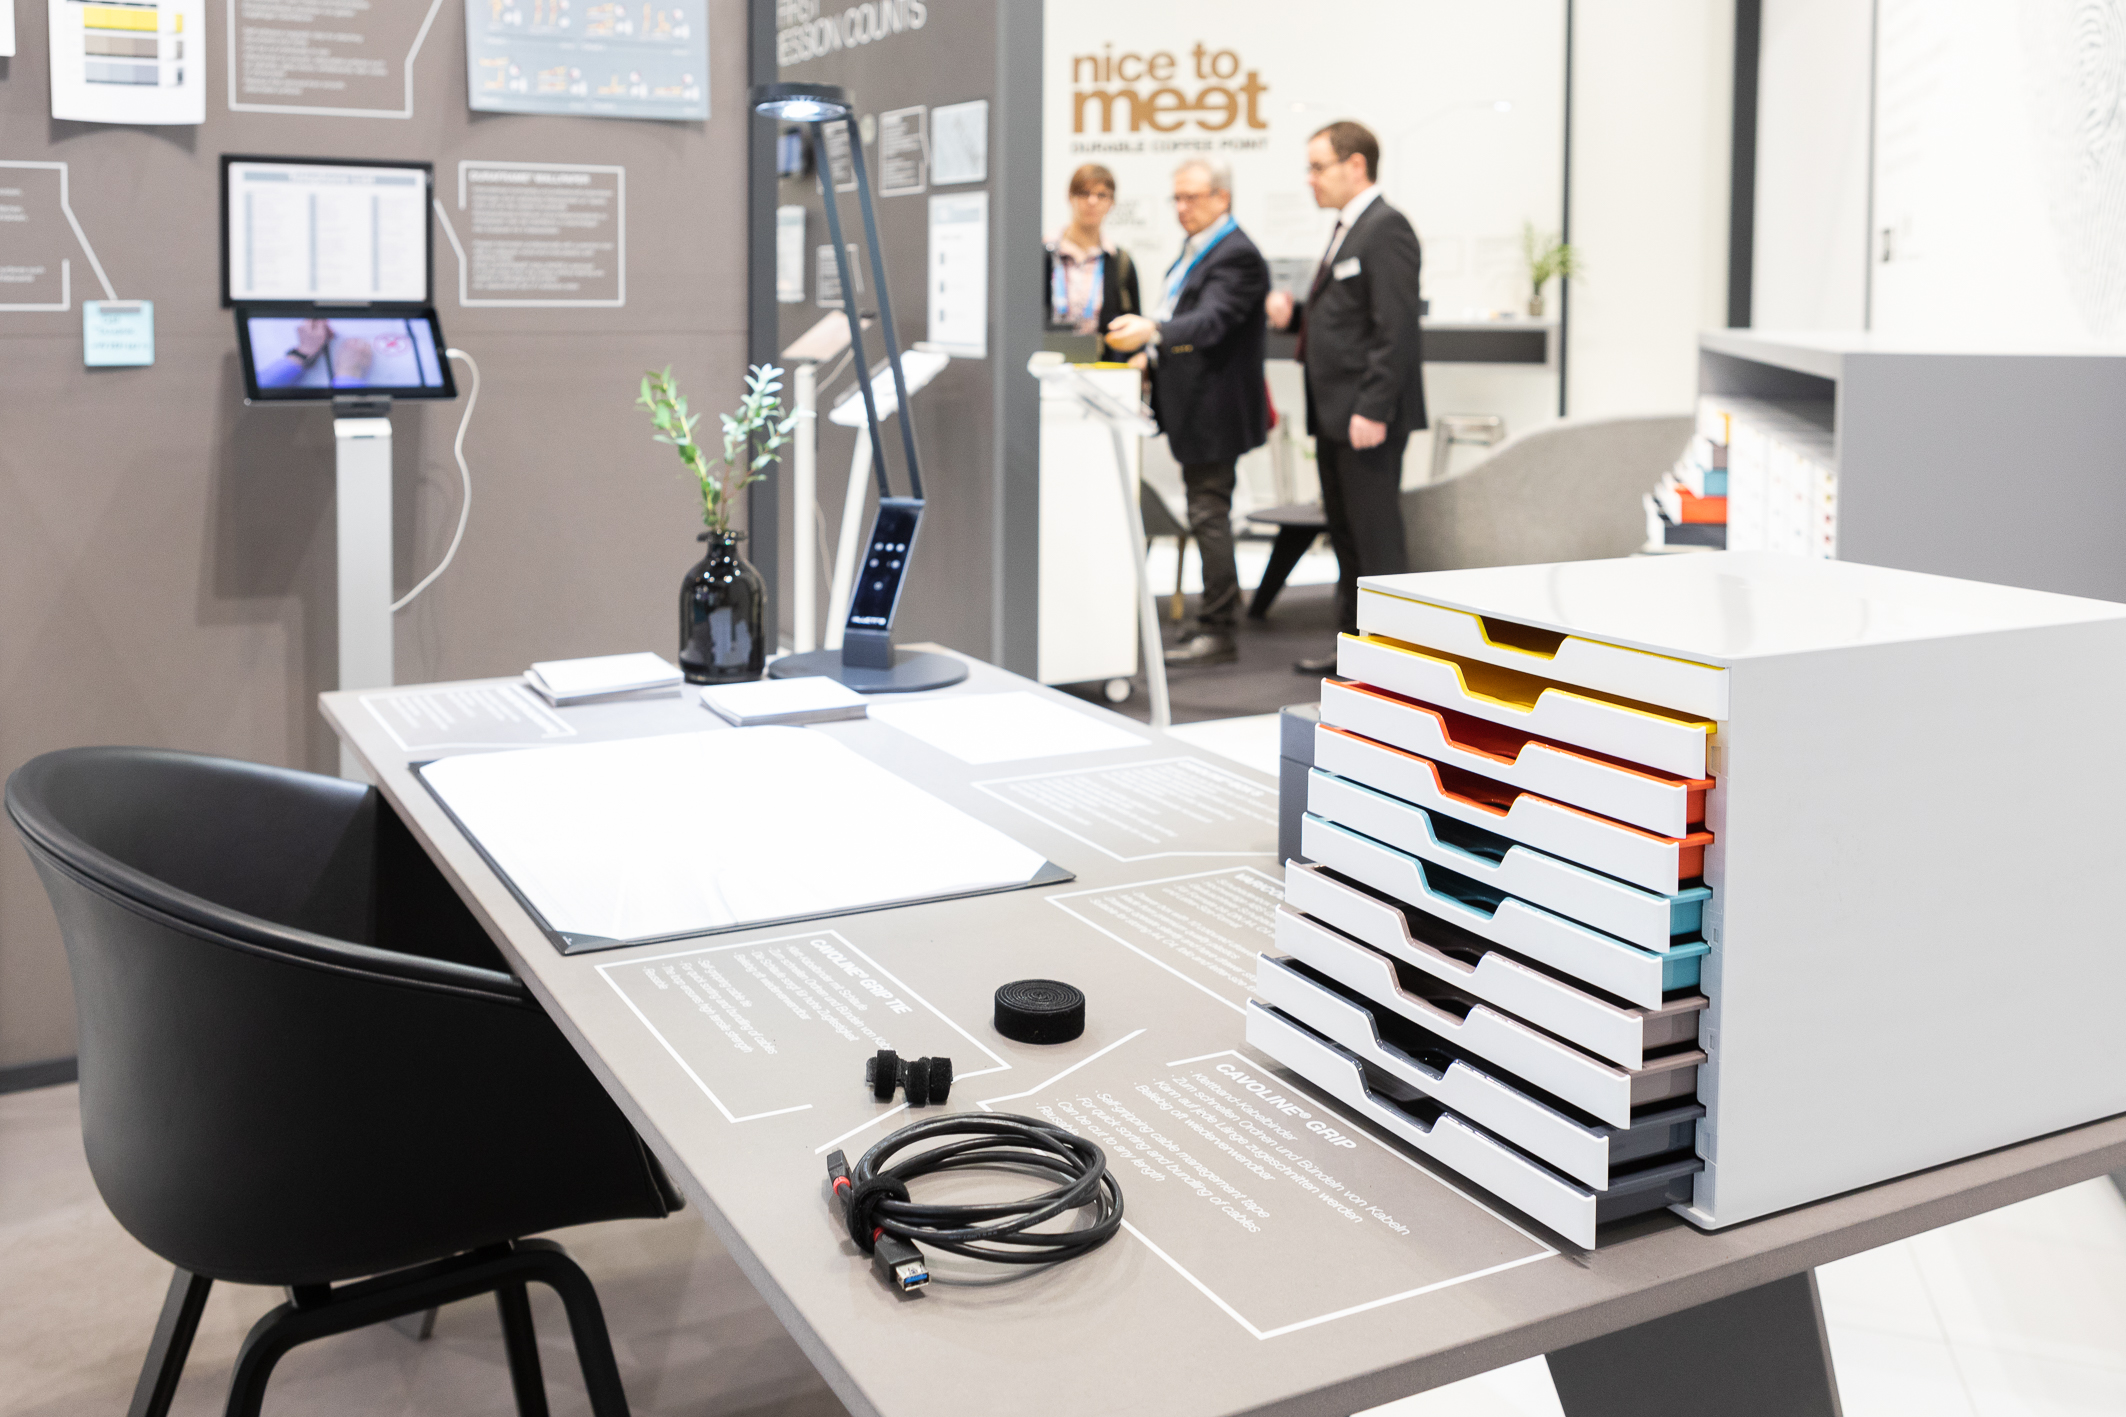 Paperworld expose les tendances 2020 du bureau contemporain